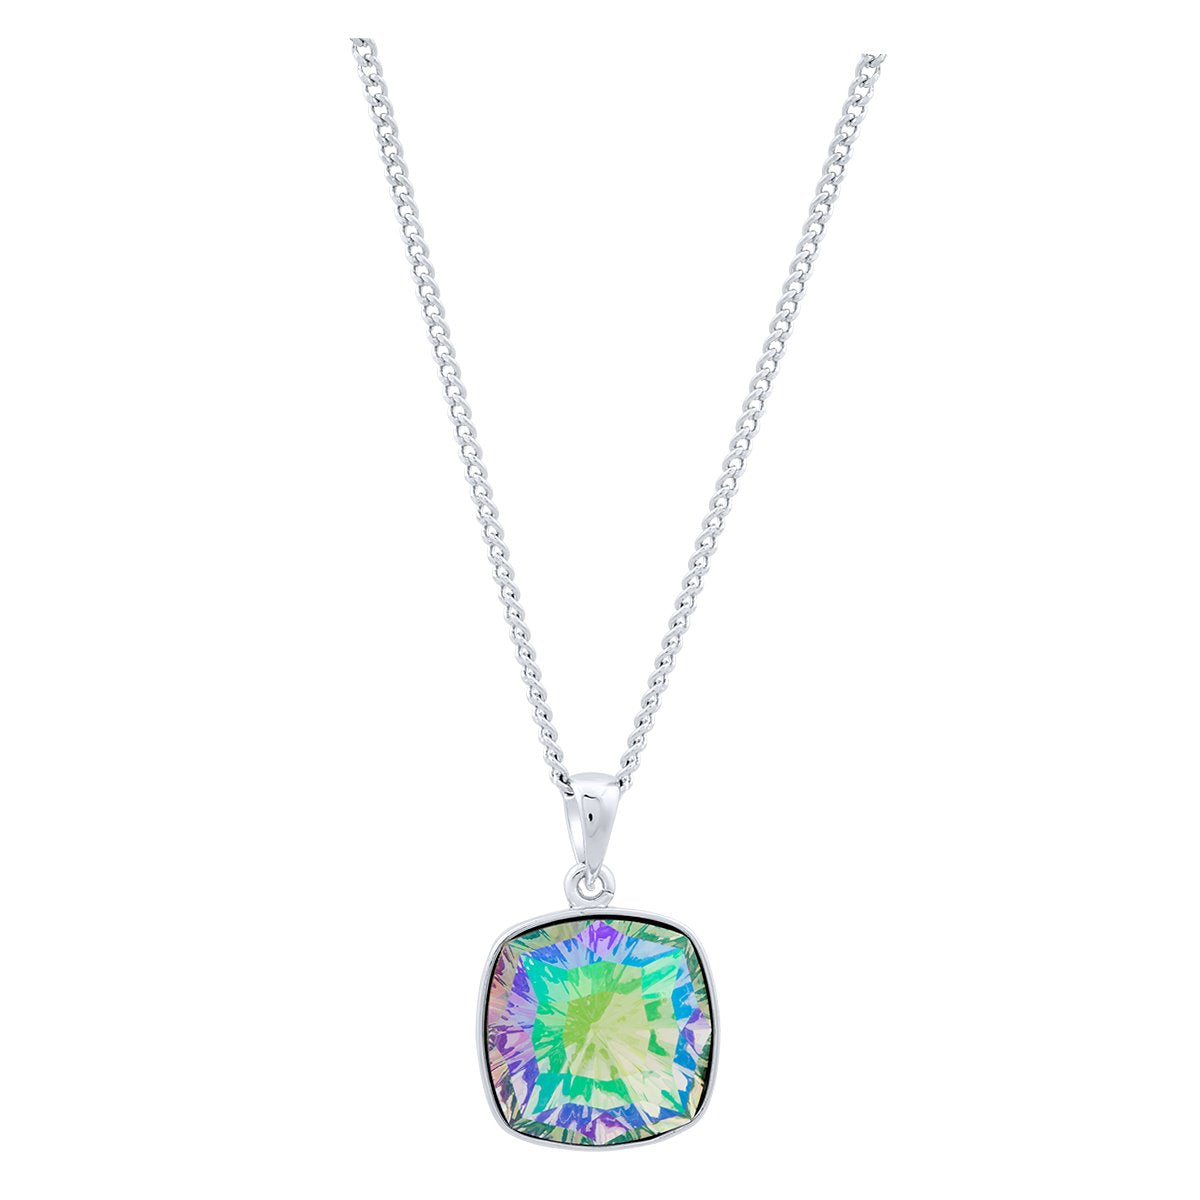 Louvre Pendant Silver Paradise Shine JOY OF SPARKLE FOREVER CRYSTALS